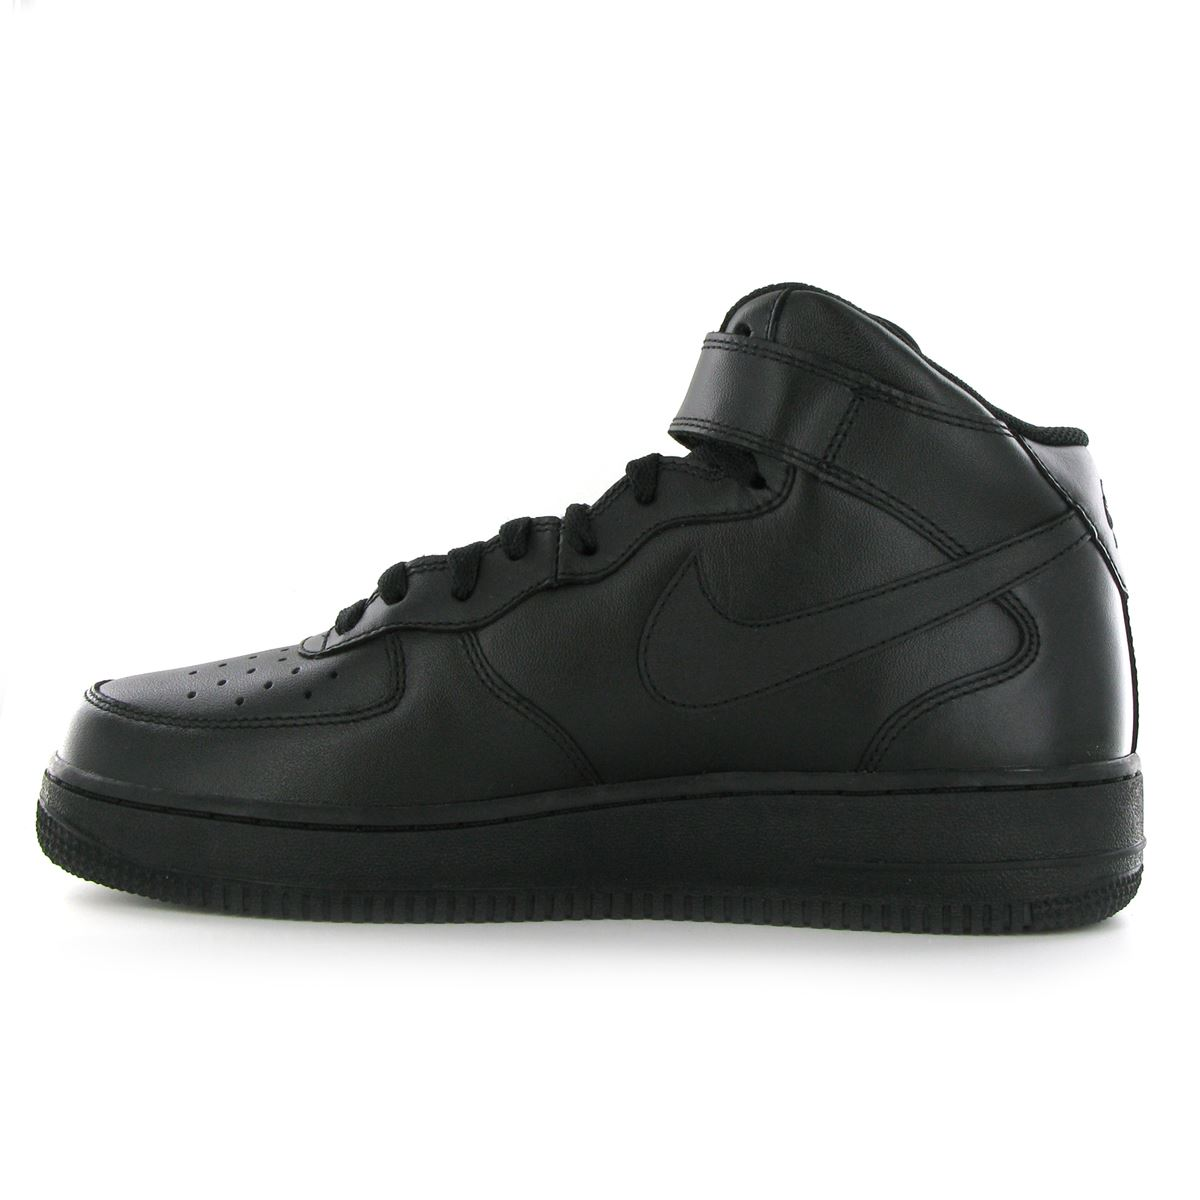 Nike-Air-Force-1-Mid-07-Leather-Mens-Trainers